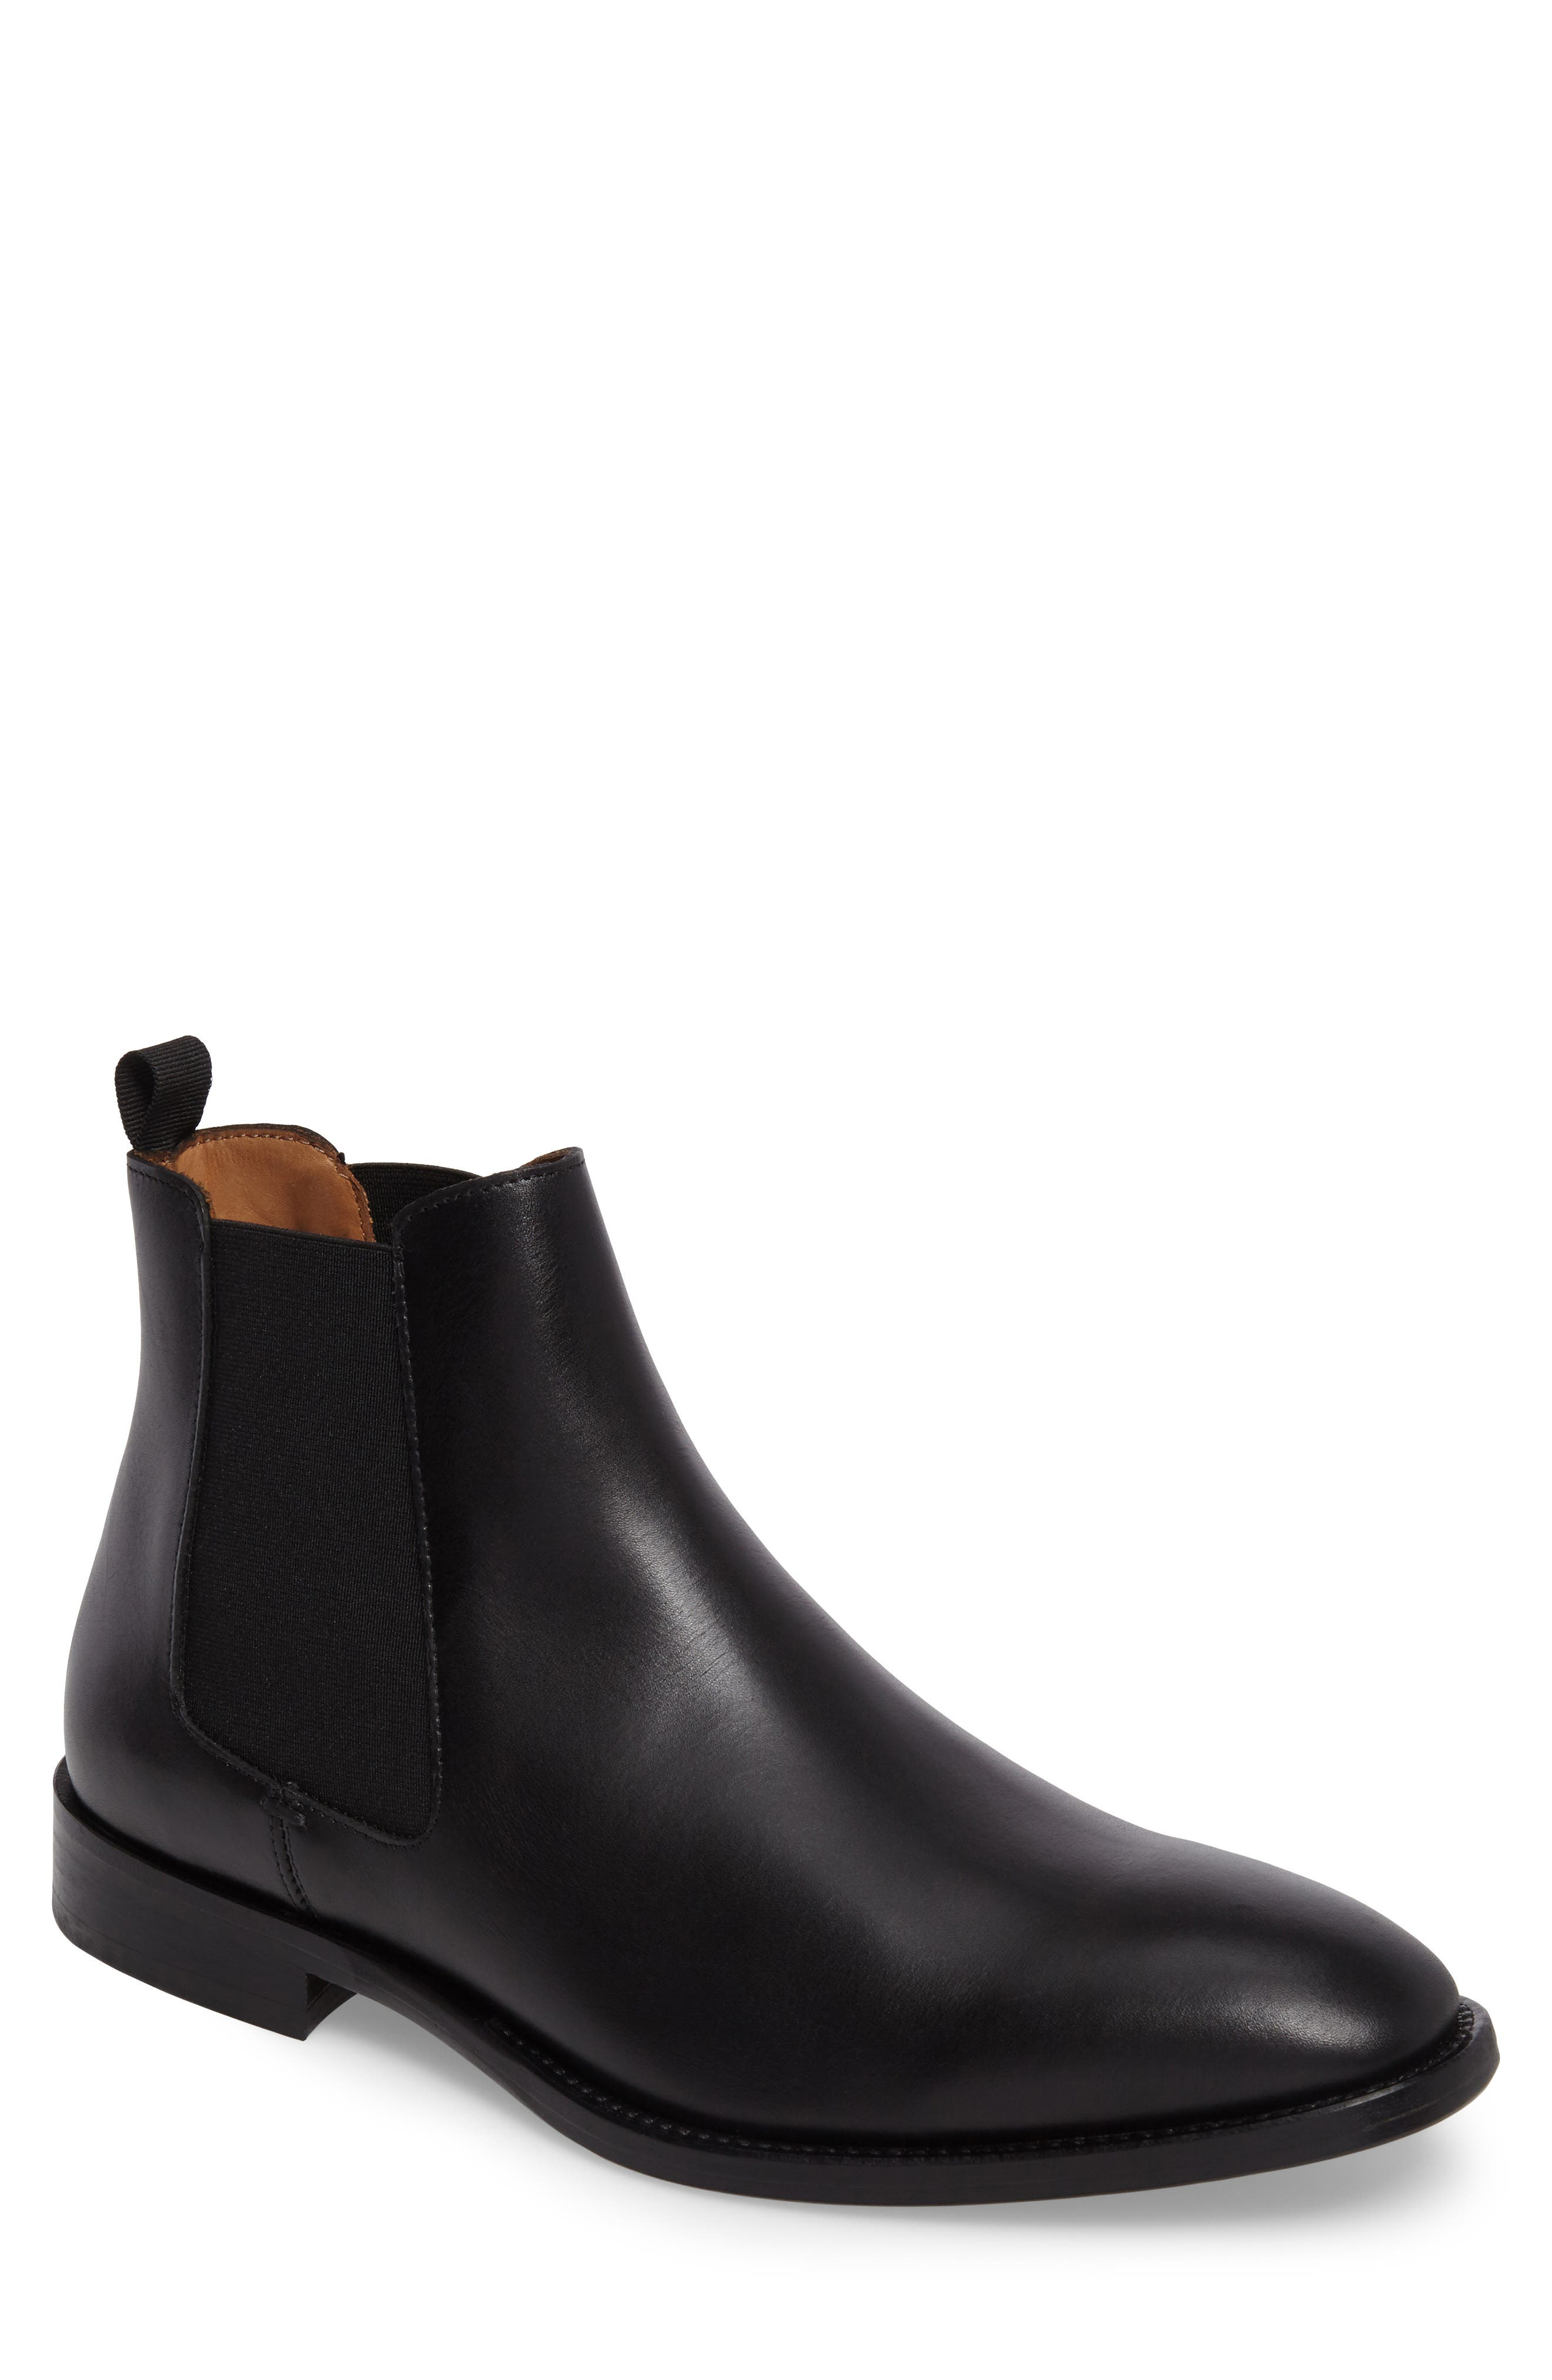 Haldien Chelsea Boot,                             Main thumbnail 1, color,                             001